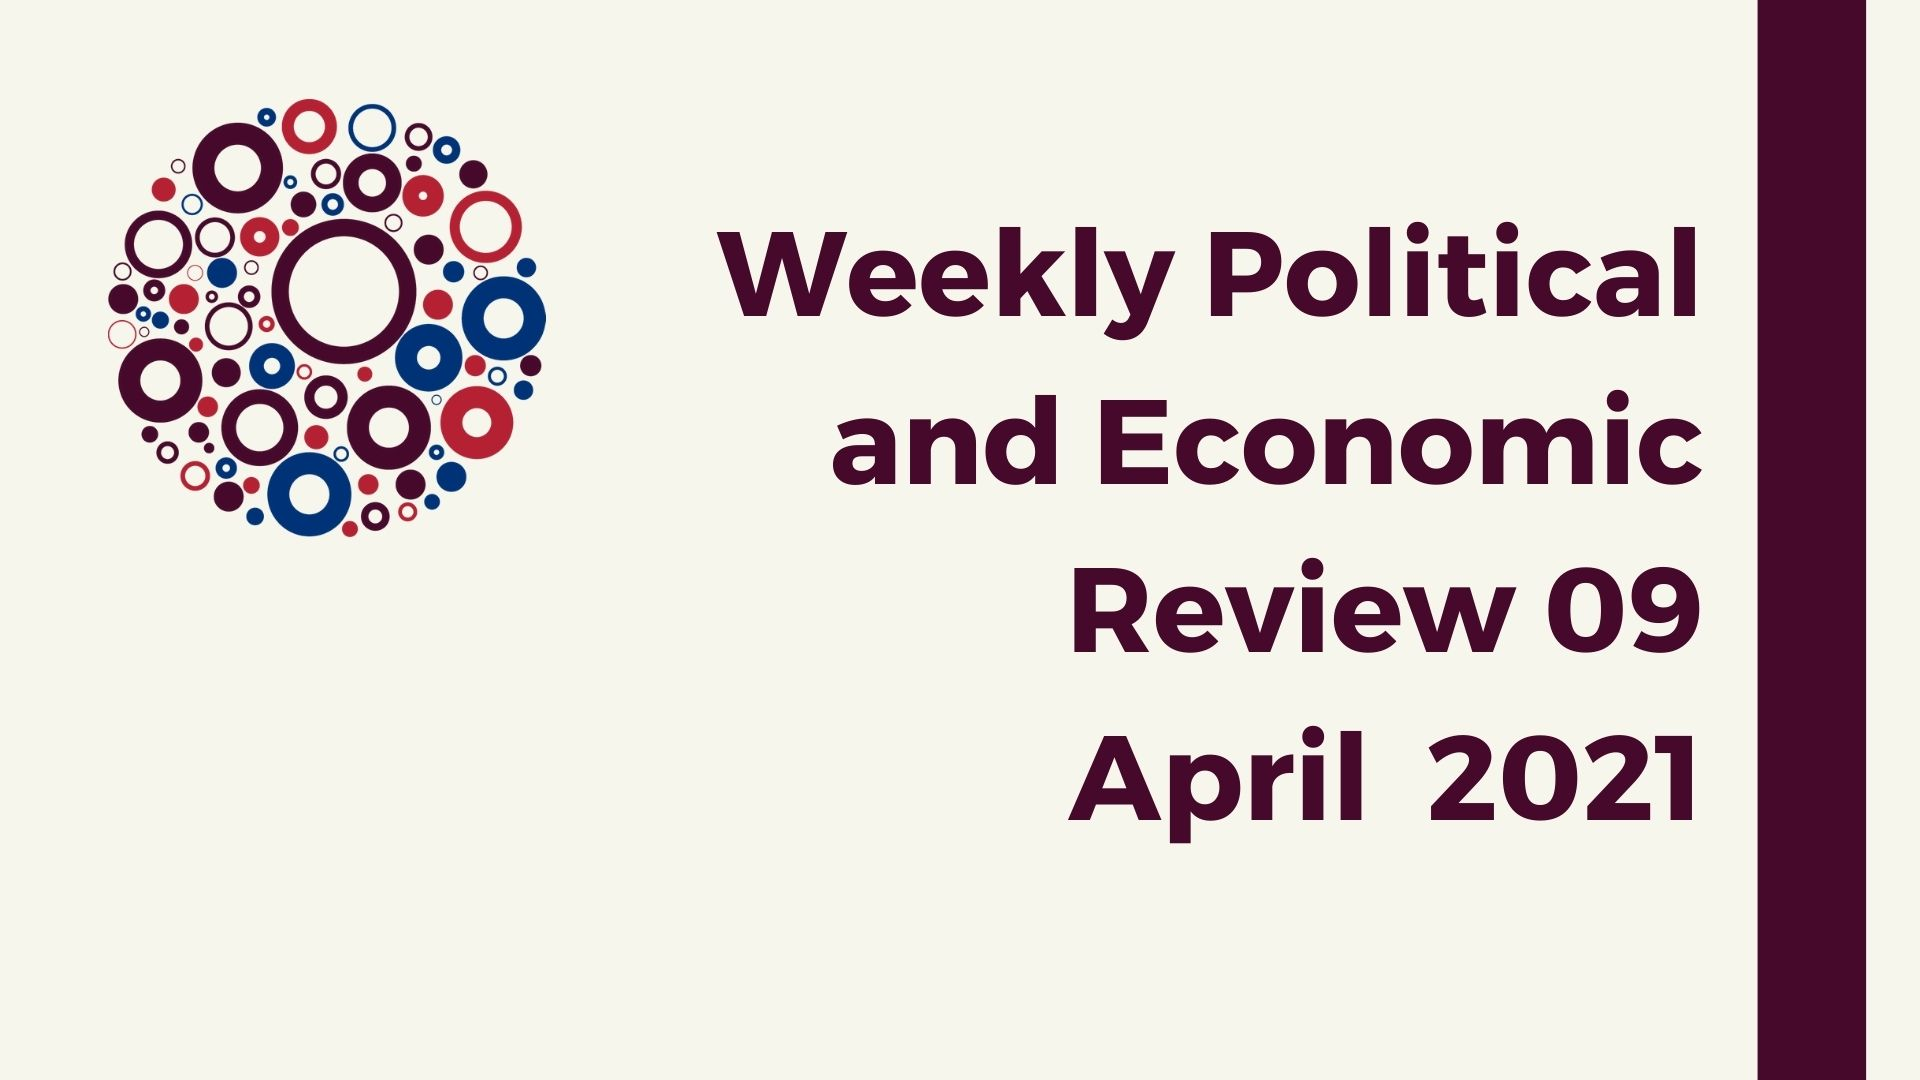 Weekly Political and Economic Review 09 April 2021